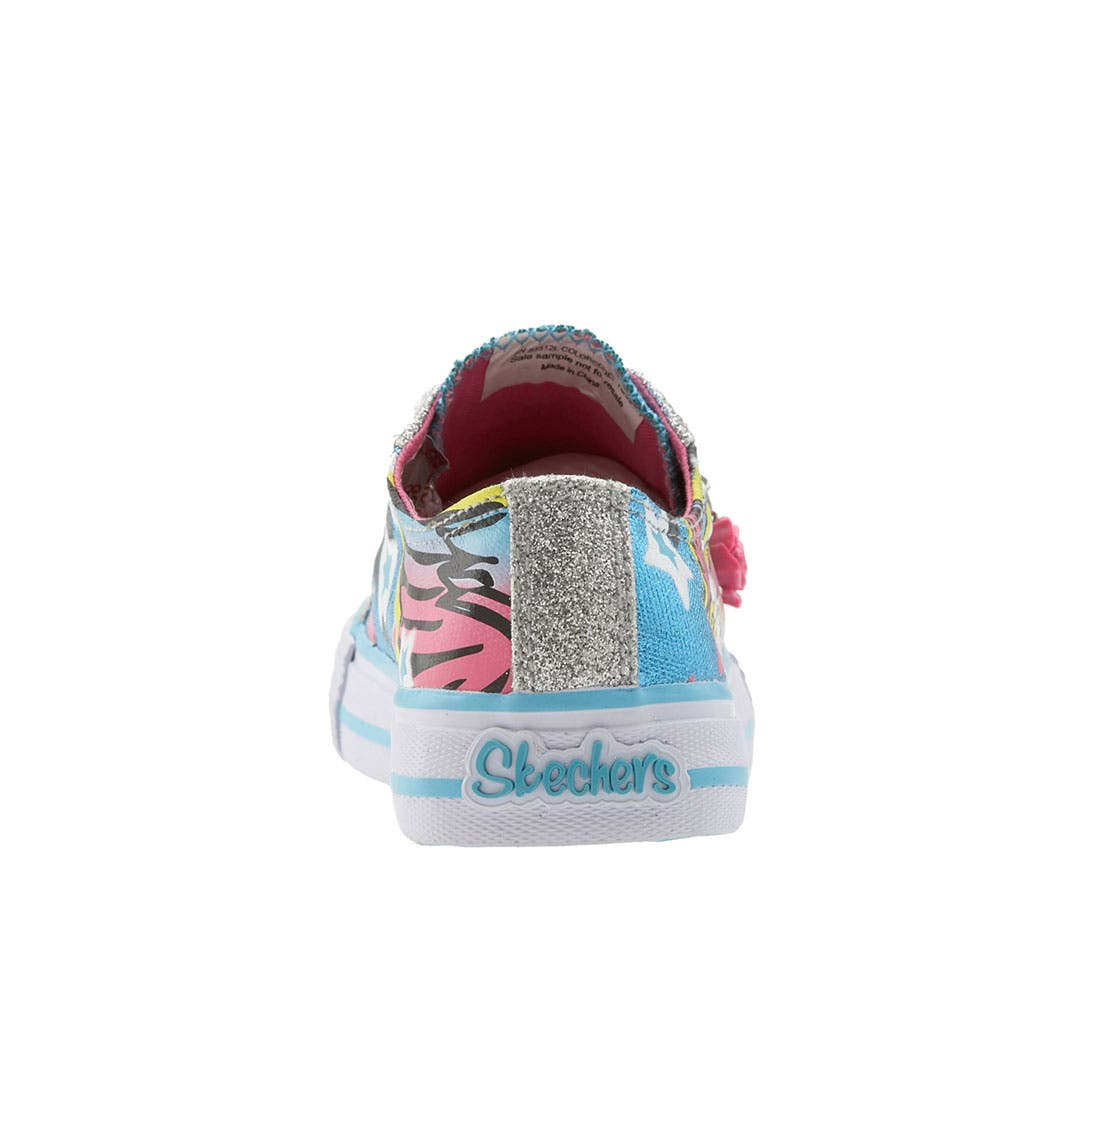 Alternate Image 4  - SKECHERS 'Shuffles - Free Fall' Sneaker (Toddler, Little Kid & Big Kid)